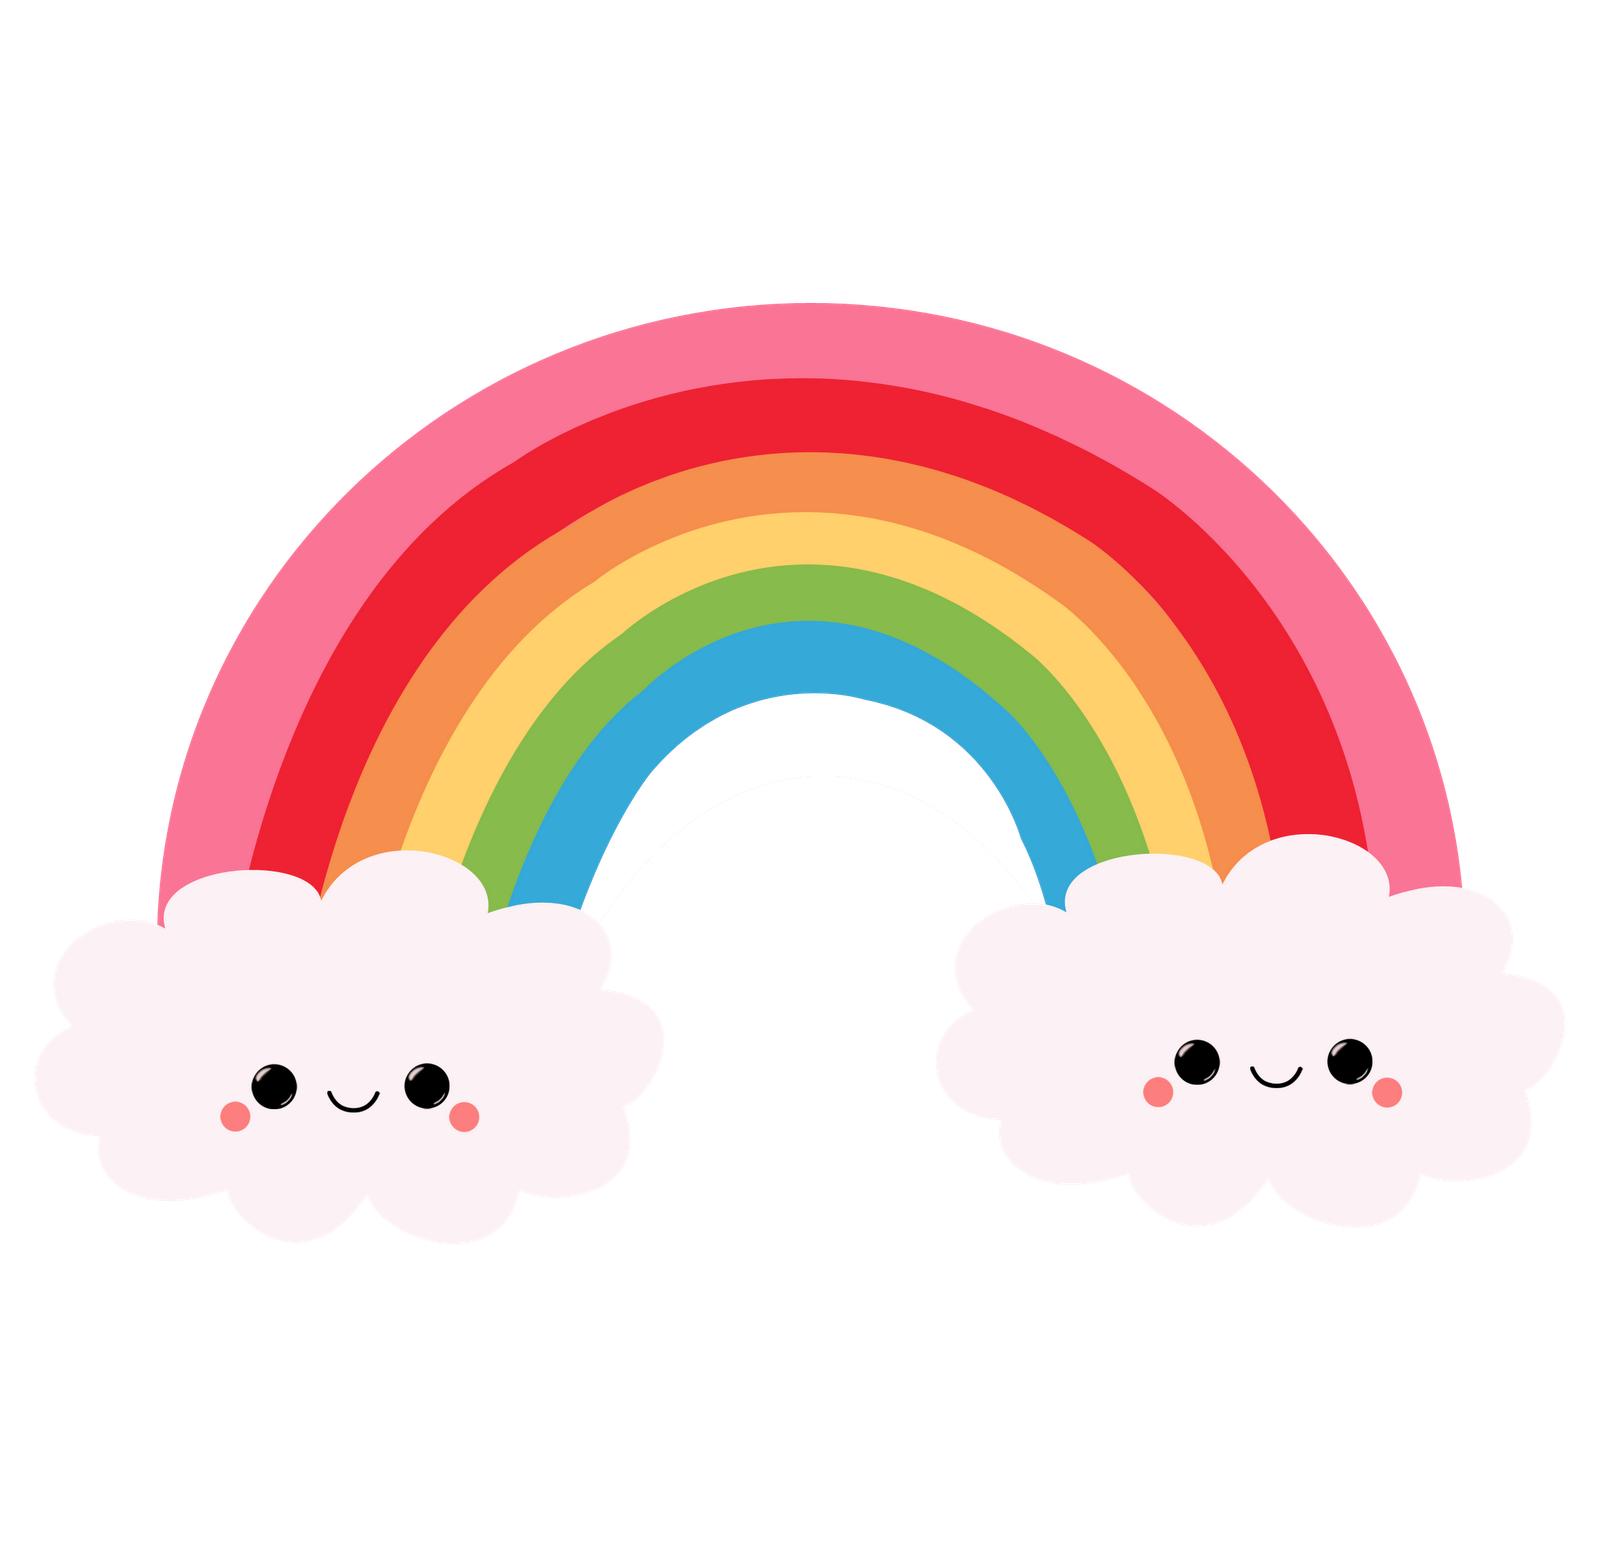 Image result for kawaii cloud transparent background